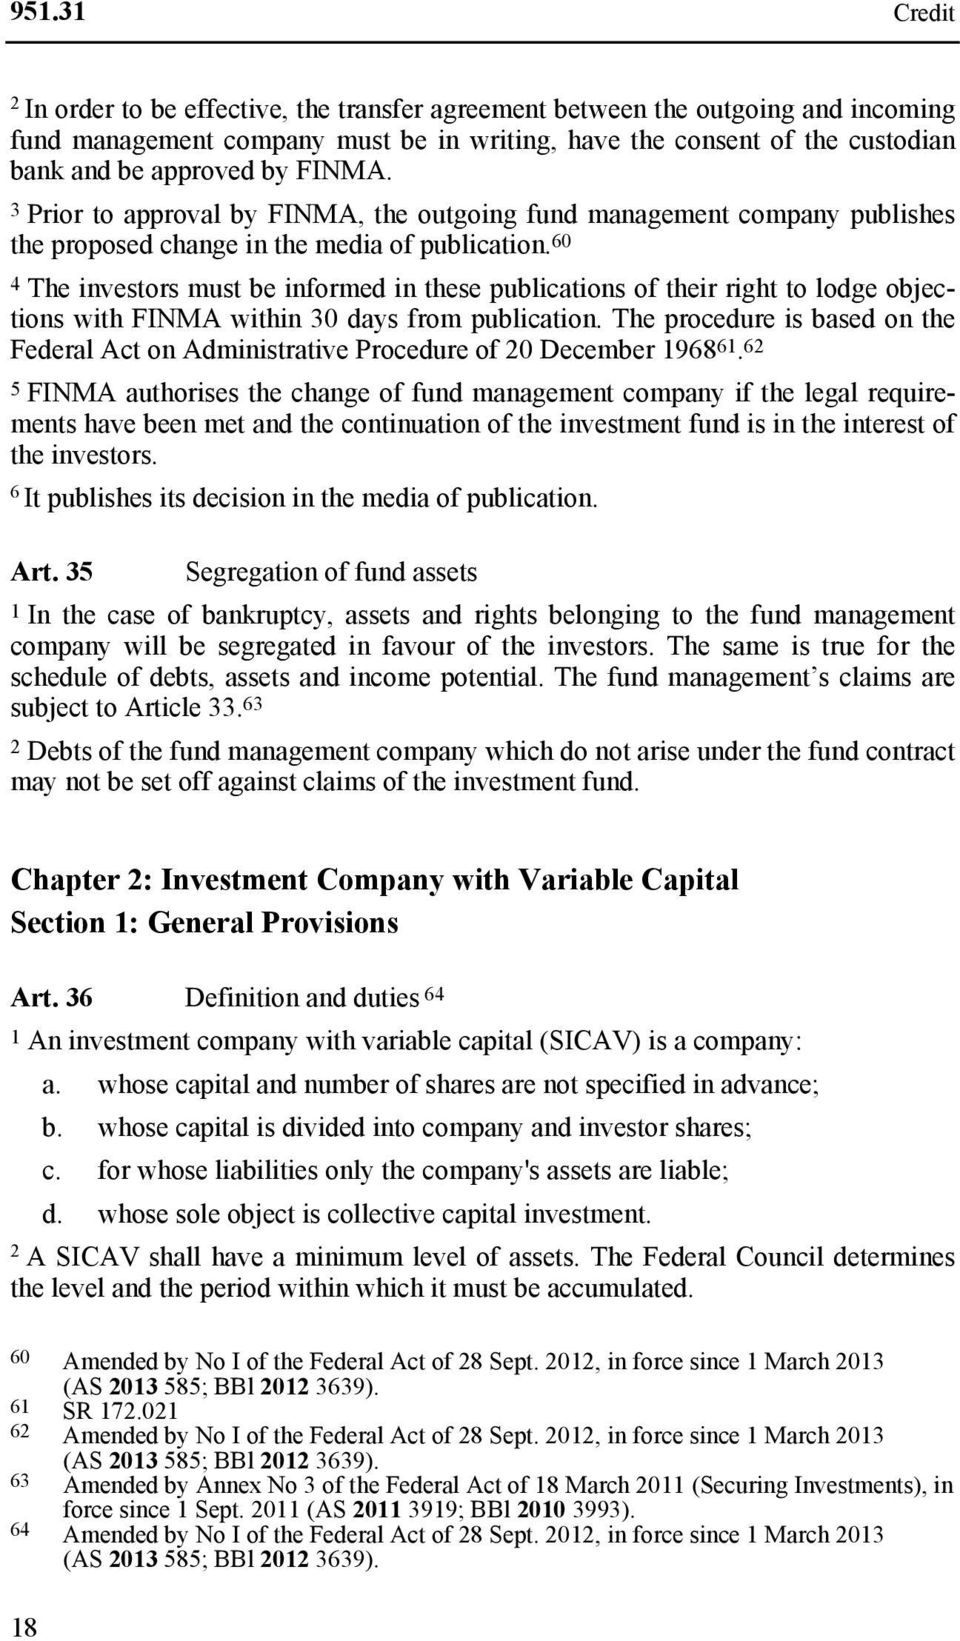 60 4 The investors must be informed in these publications of their right to lodge objections with FINMA within 30 days from publication.